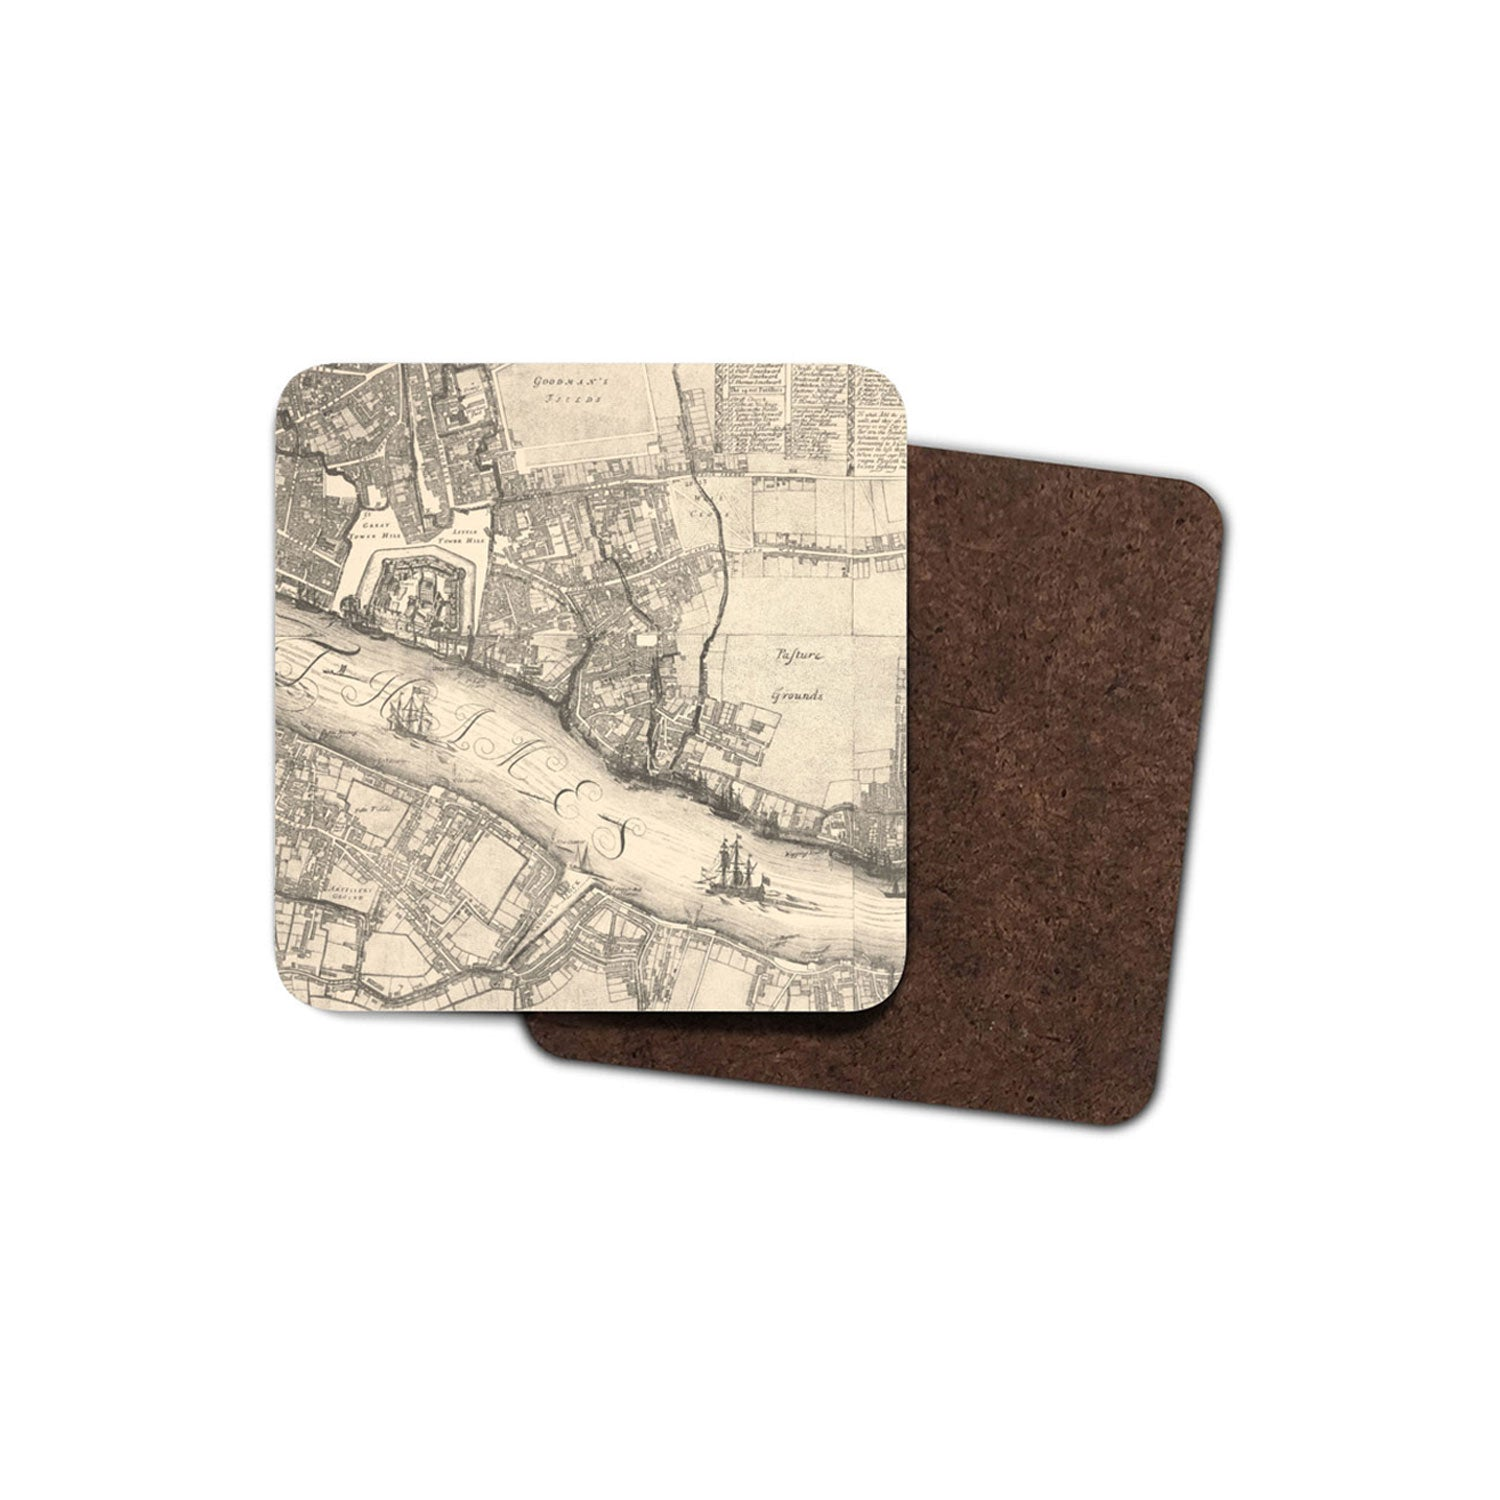 drinks coaster with historic map of london printed on it